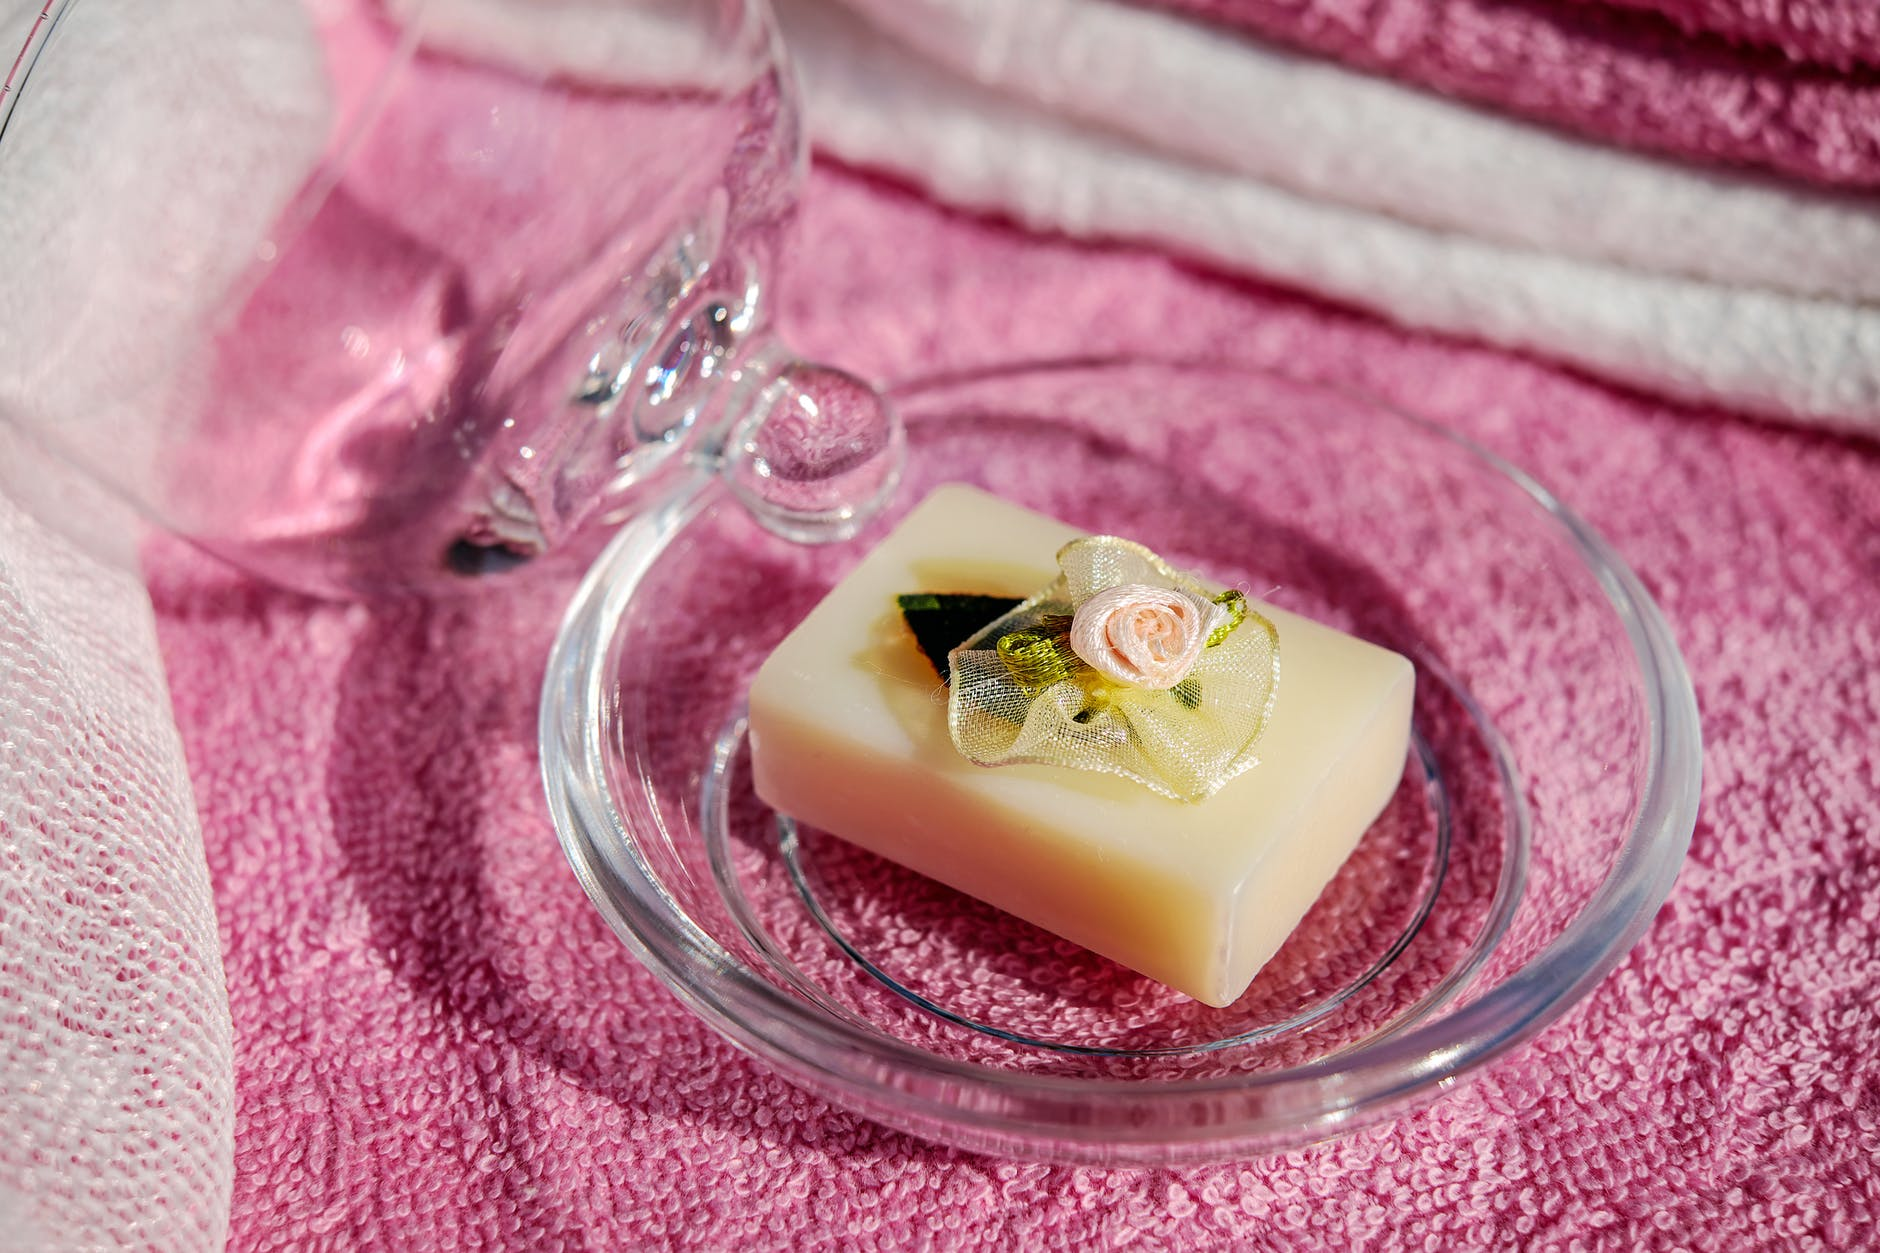 Pretty soap in dish.